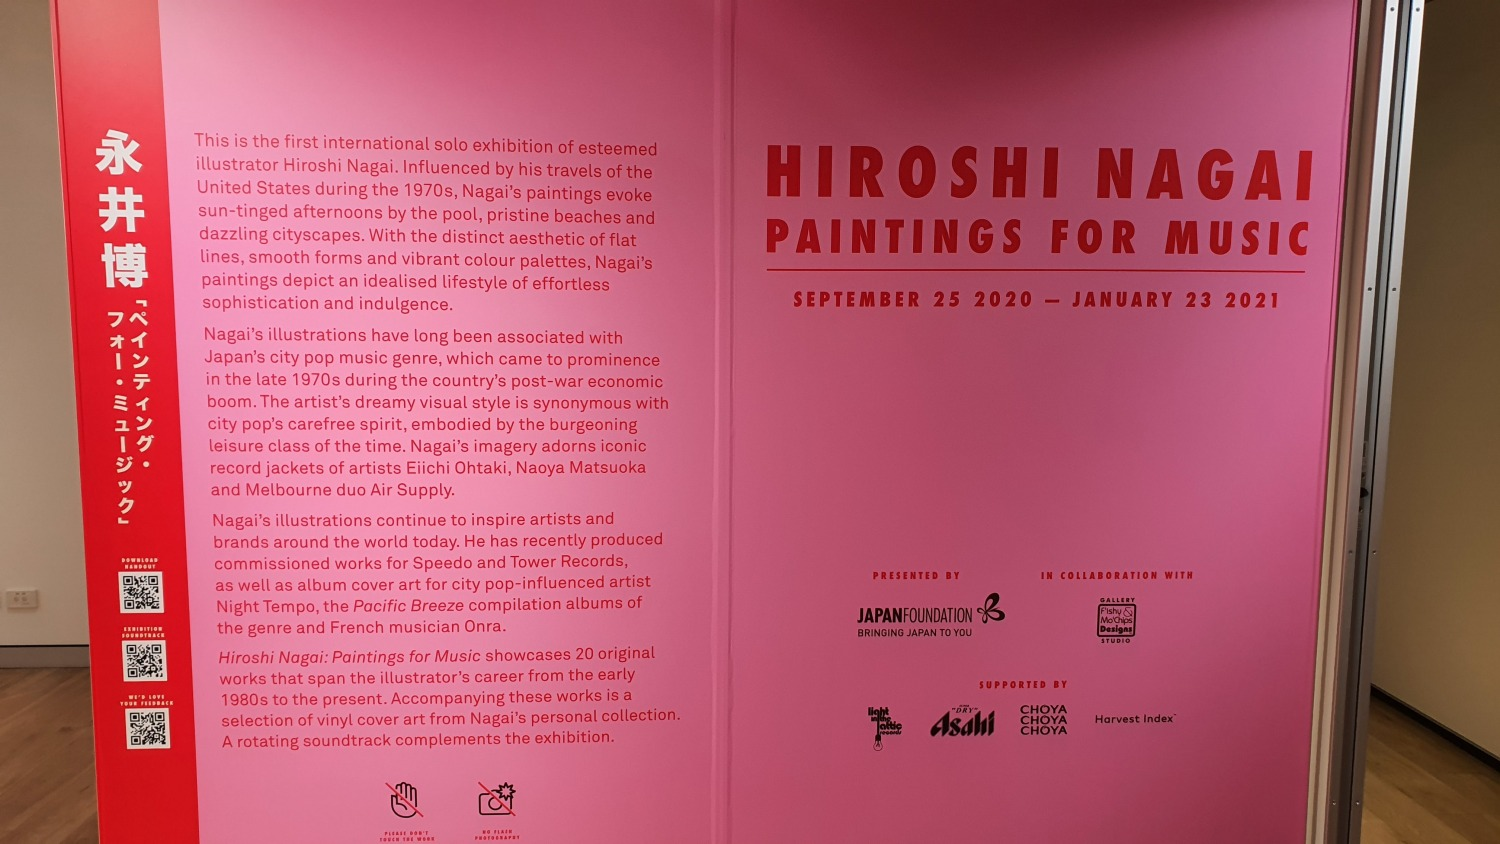 Japan Foundation Chippendale Gallery Sydney Art Out Live (7)